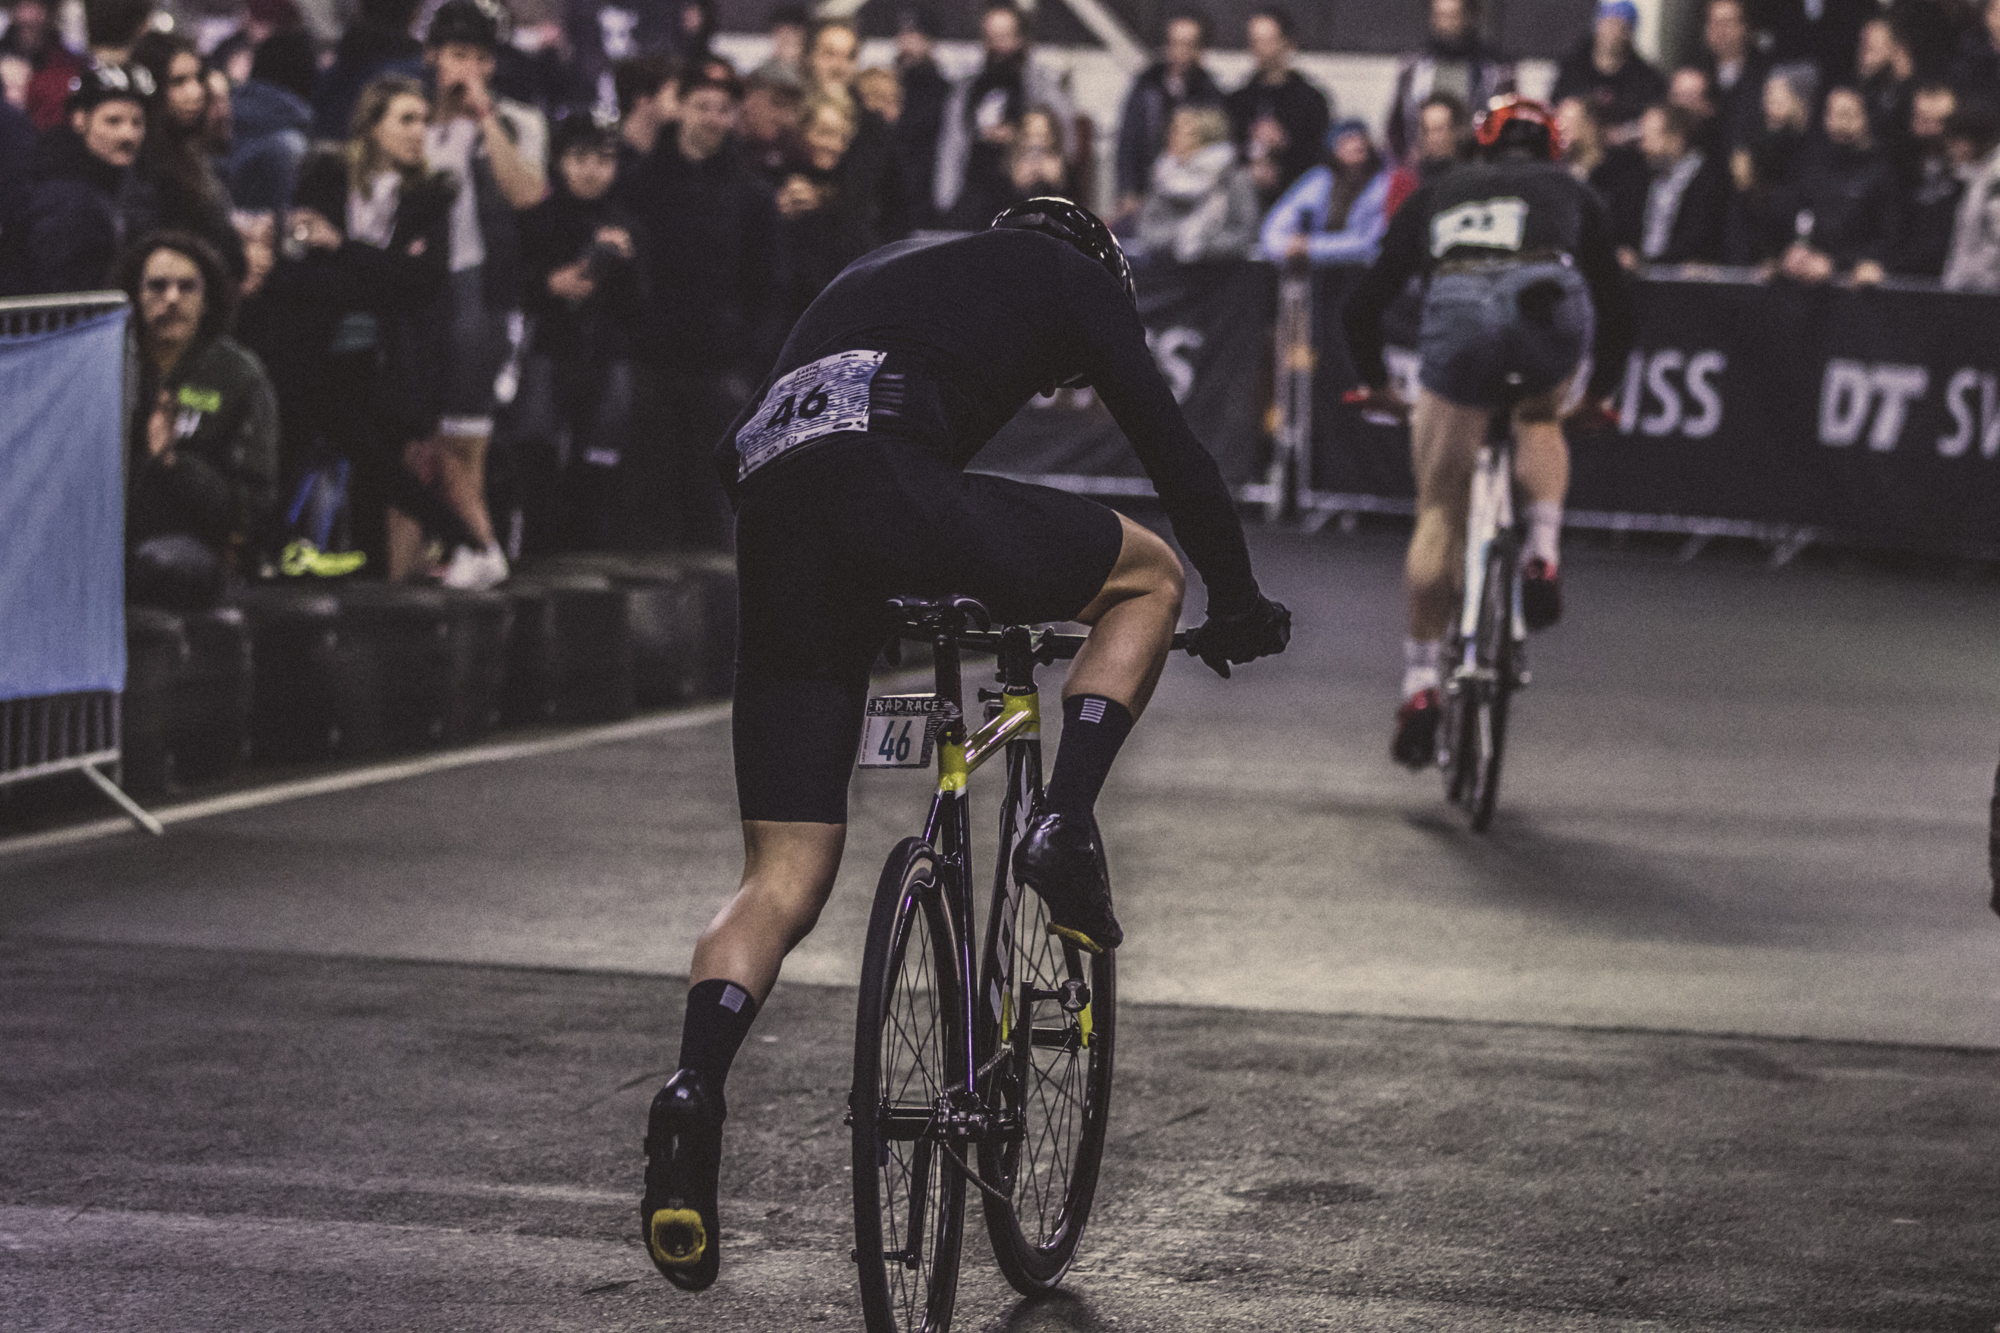 Rad_Race_Berlin_2019_Arturs_Pavlovs (6 of 9).jpeg